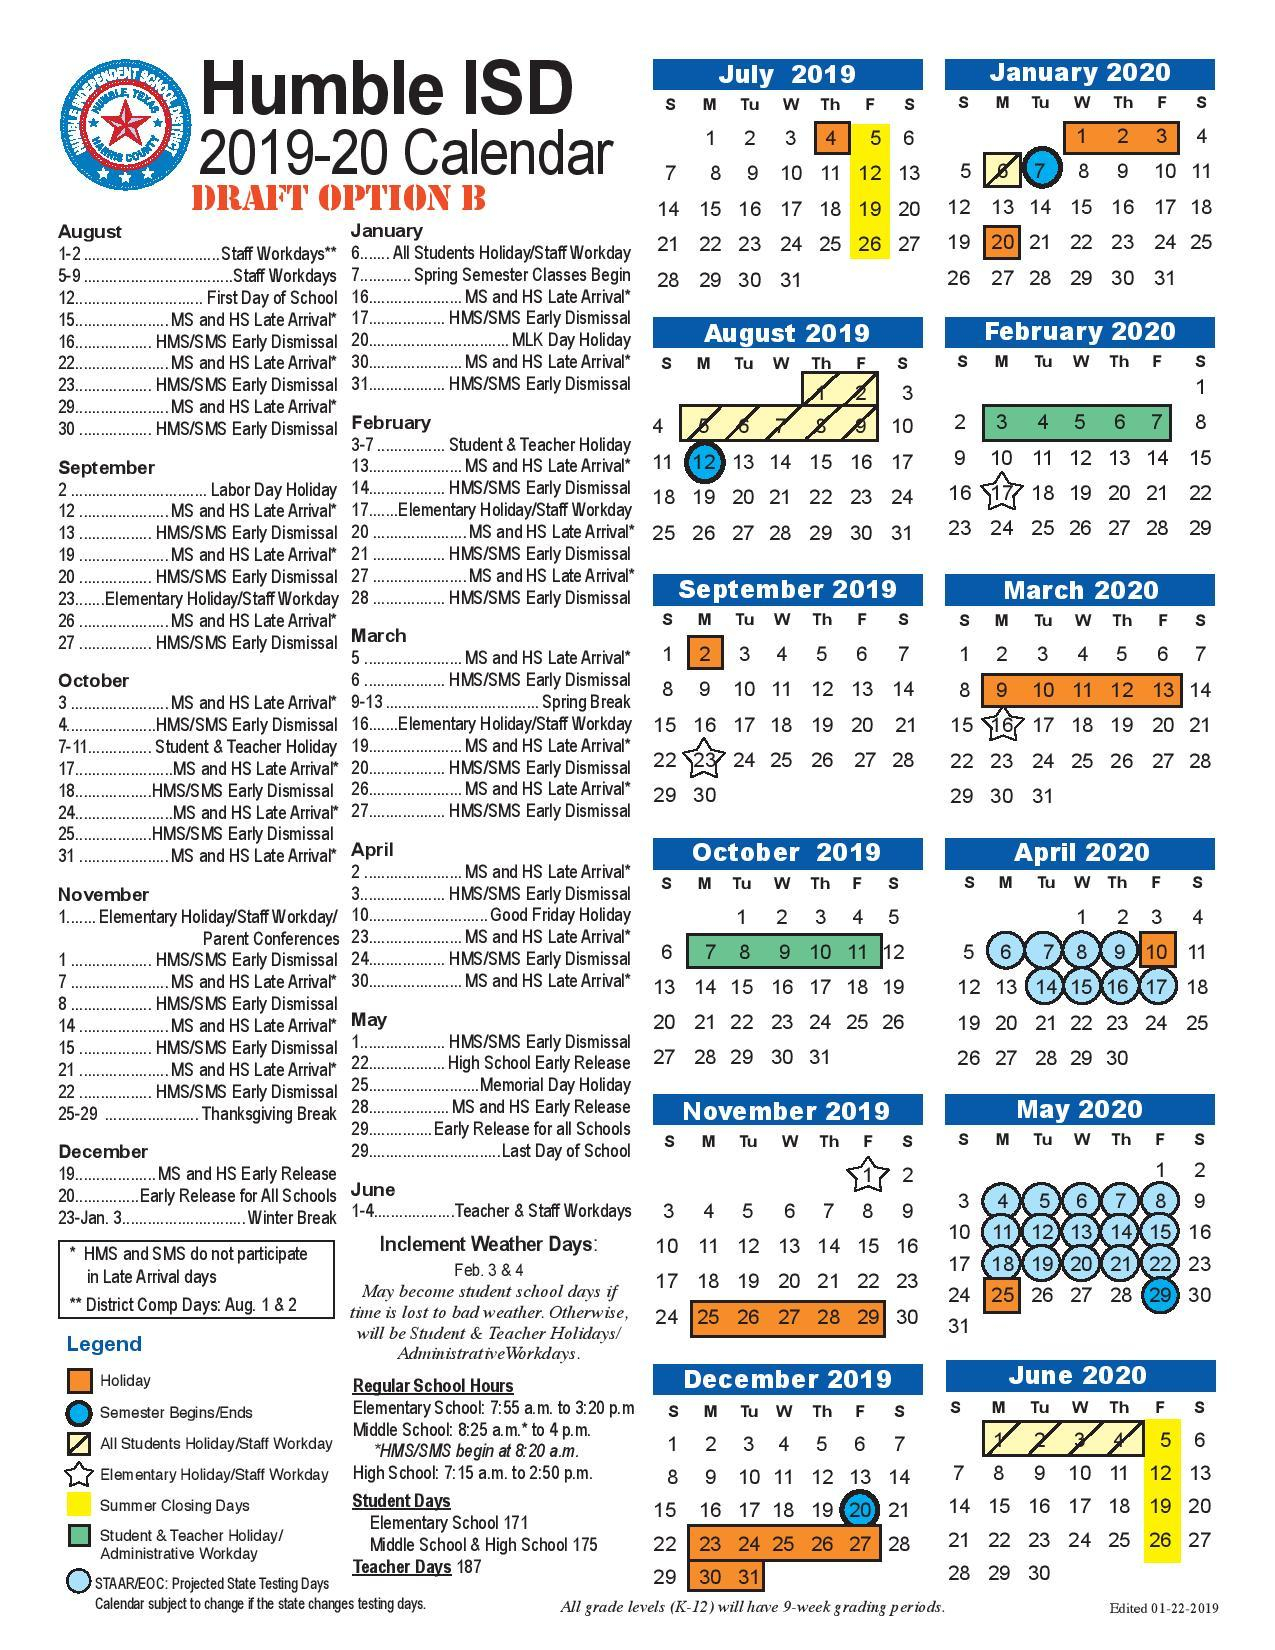 Humble Isd Adds Week Long Vacations In February, October To With Regard To New Caney School Calendar